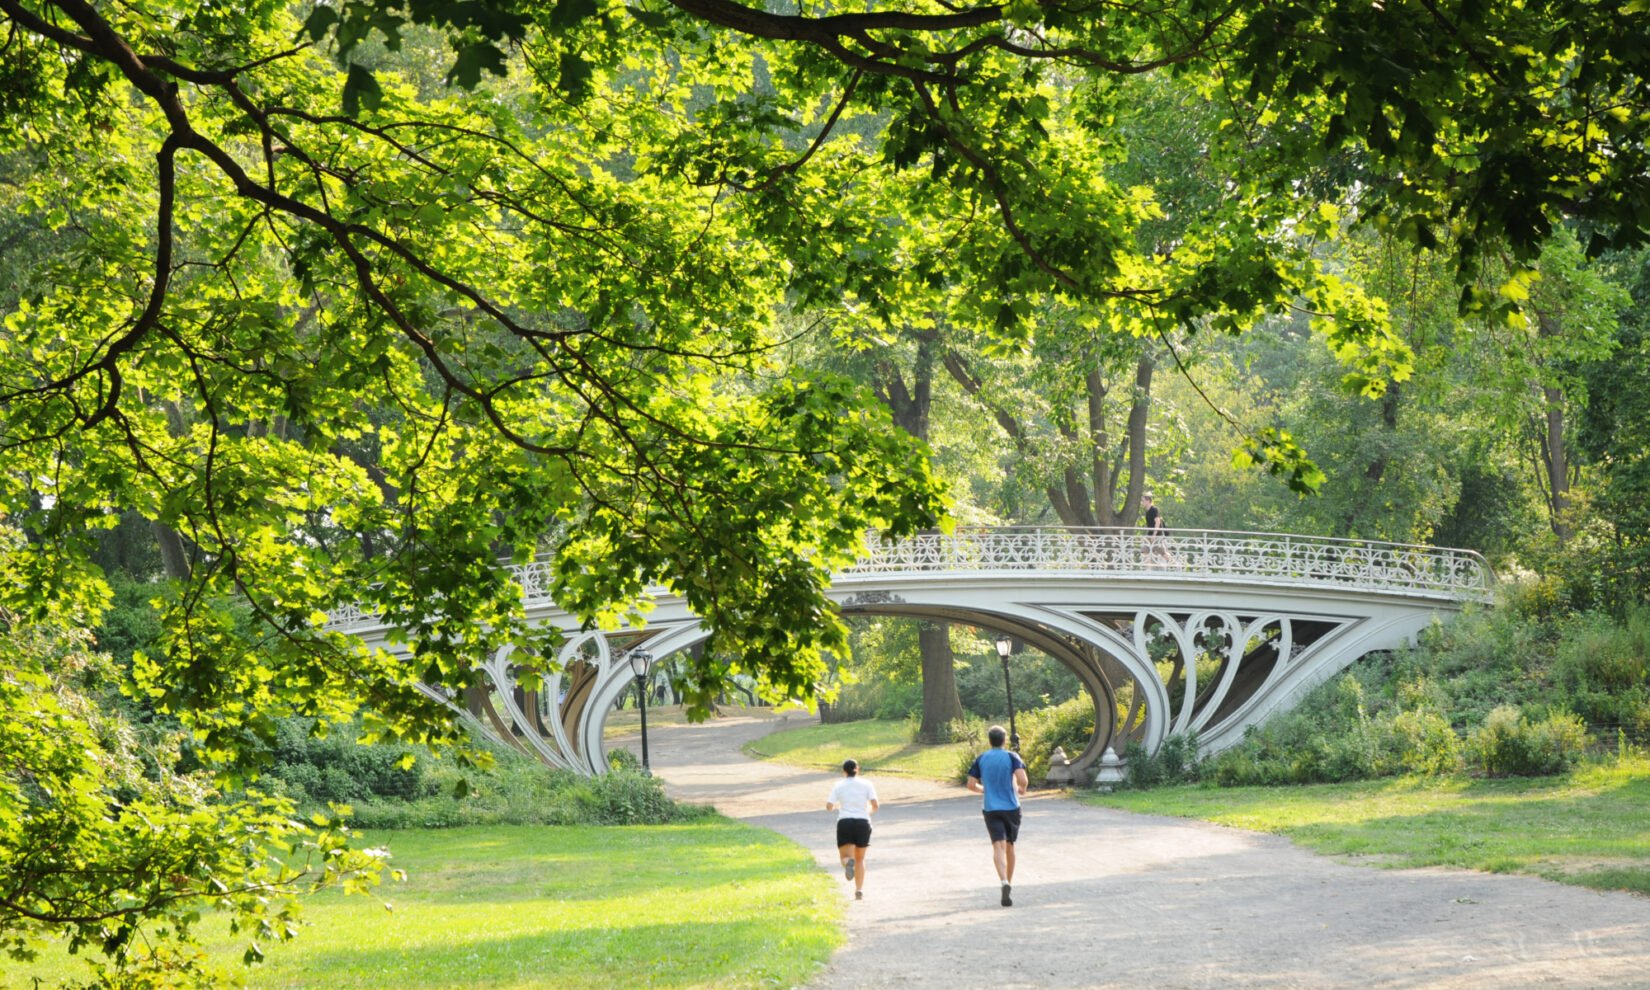 A pair of joggers on the bridle path head under Bridge 28 and a canopy of spring-green trees.